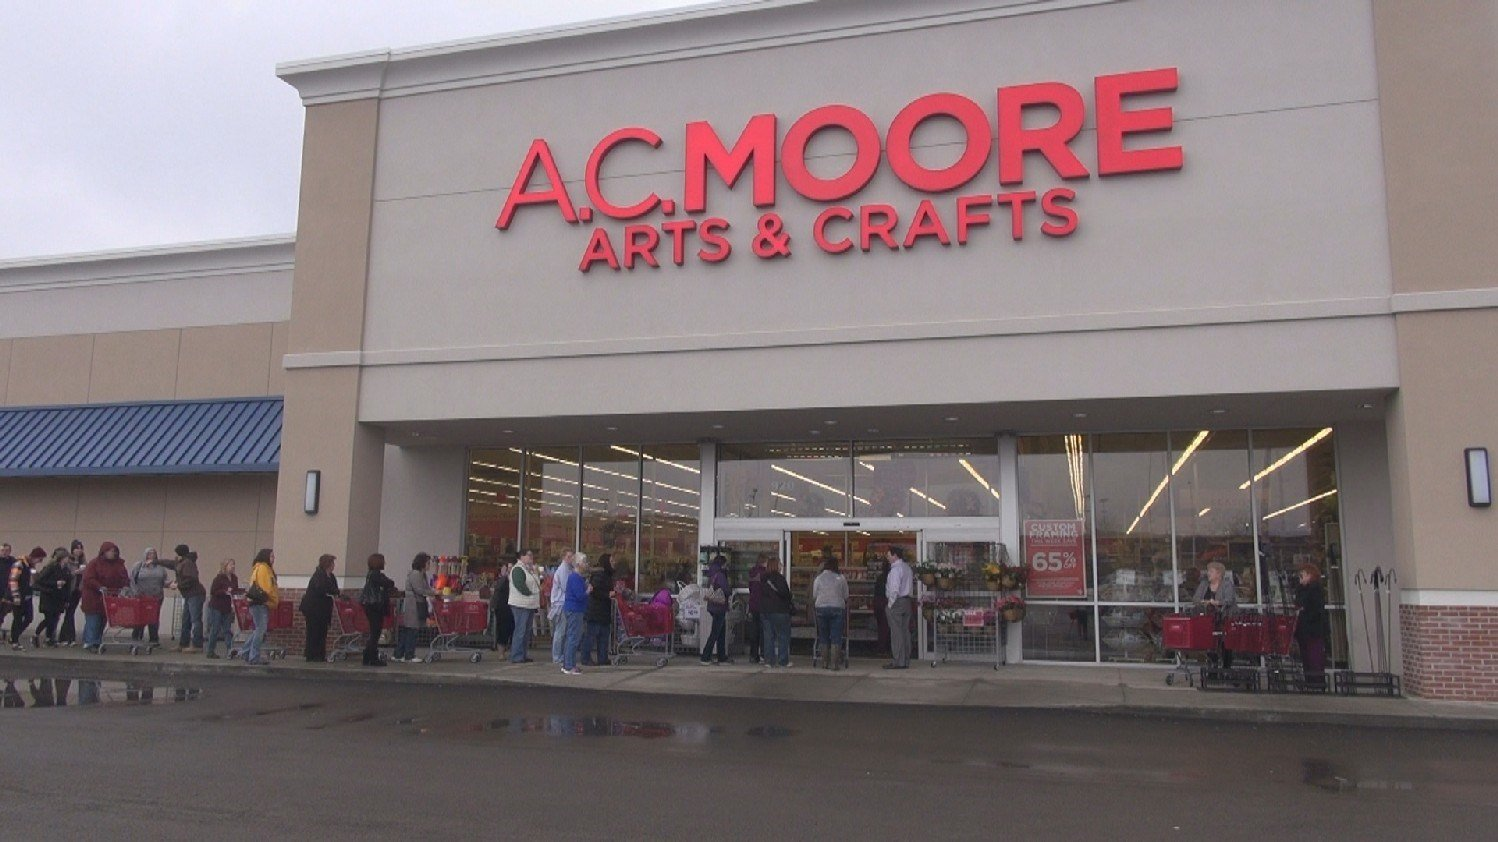 Ac moore for Ac moore craft classes